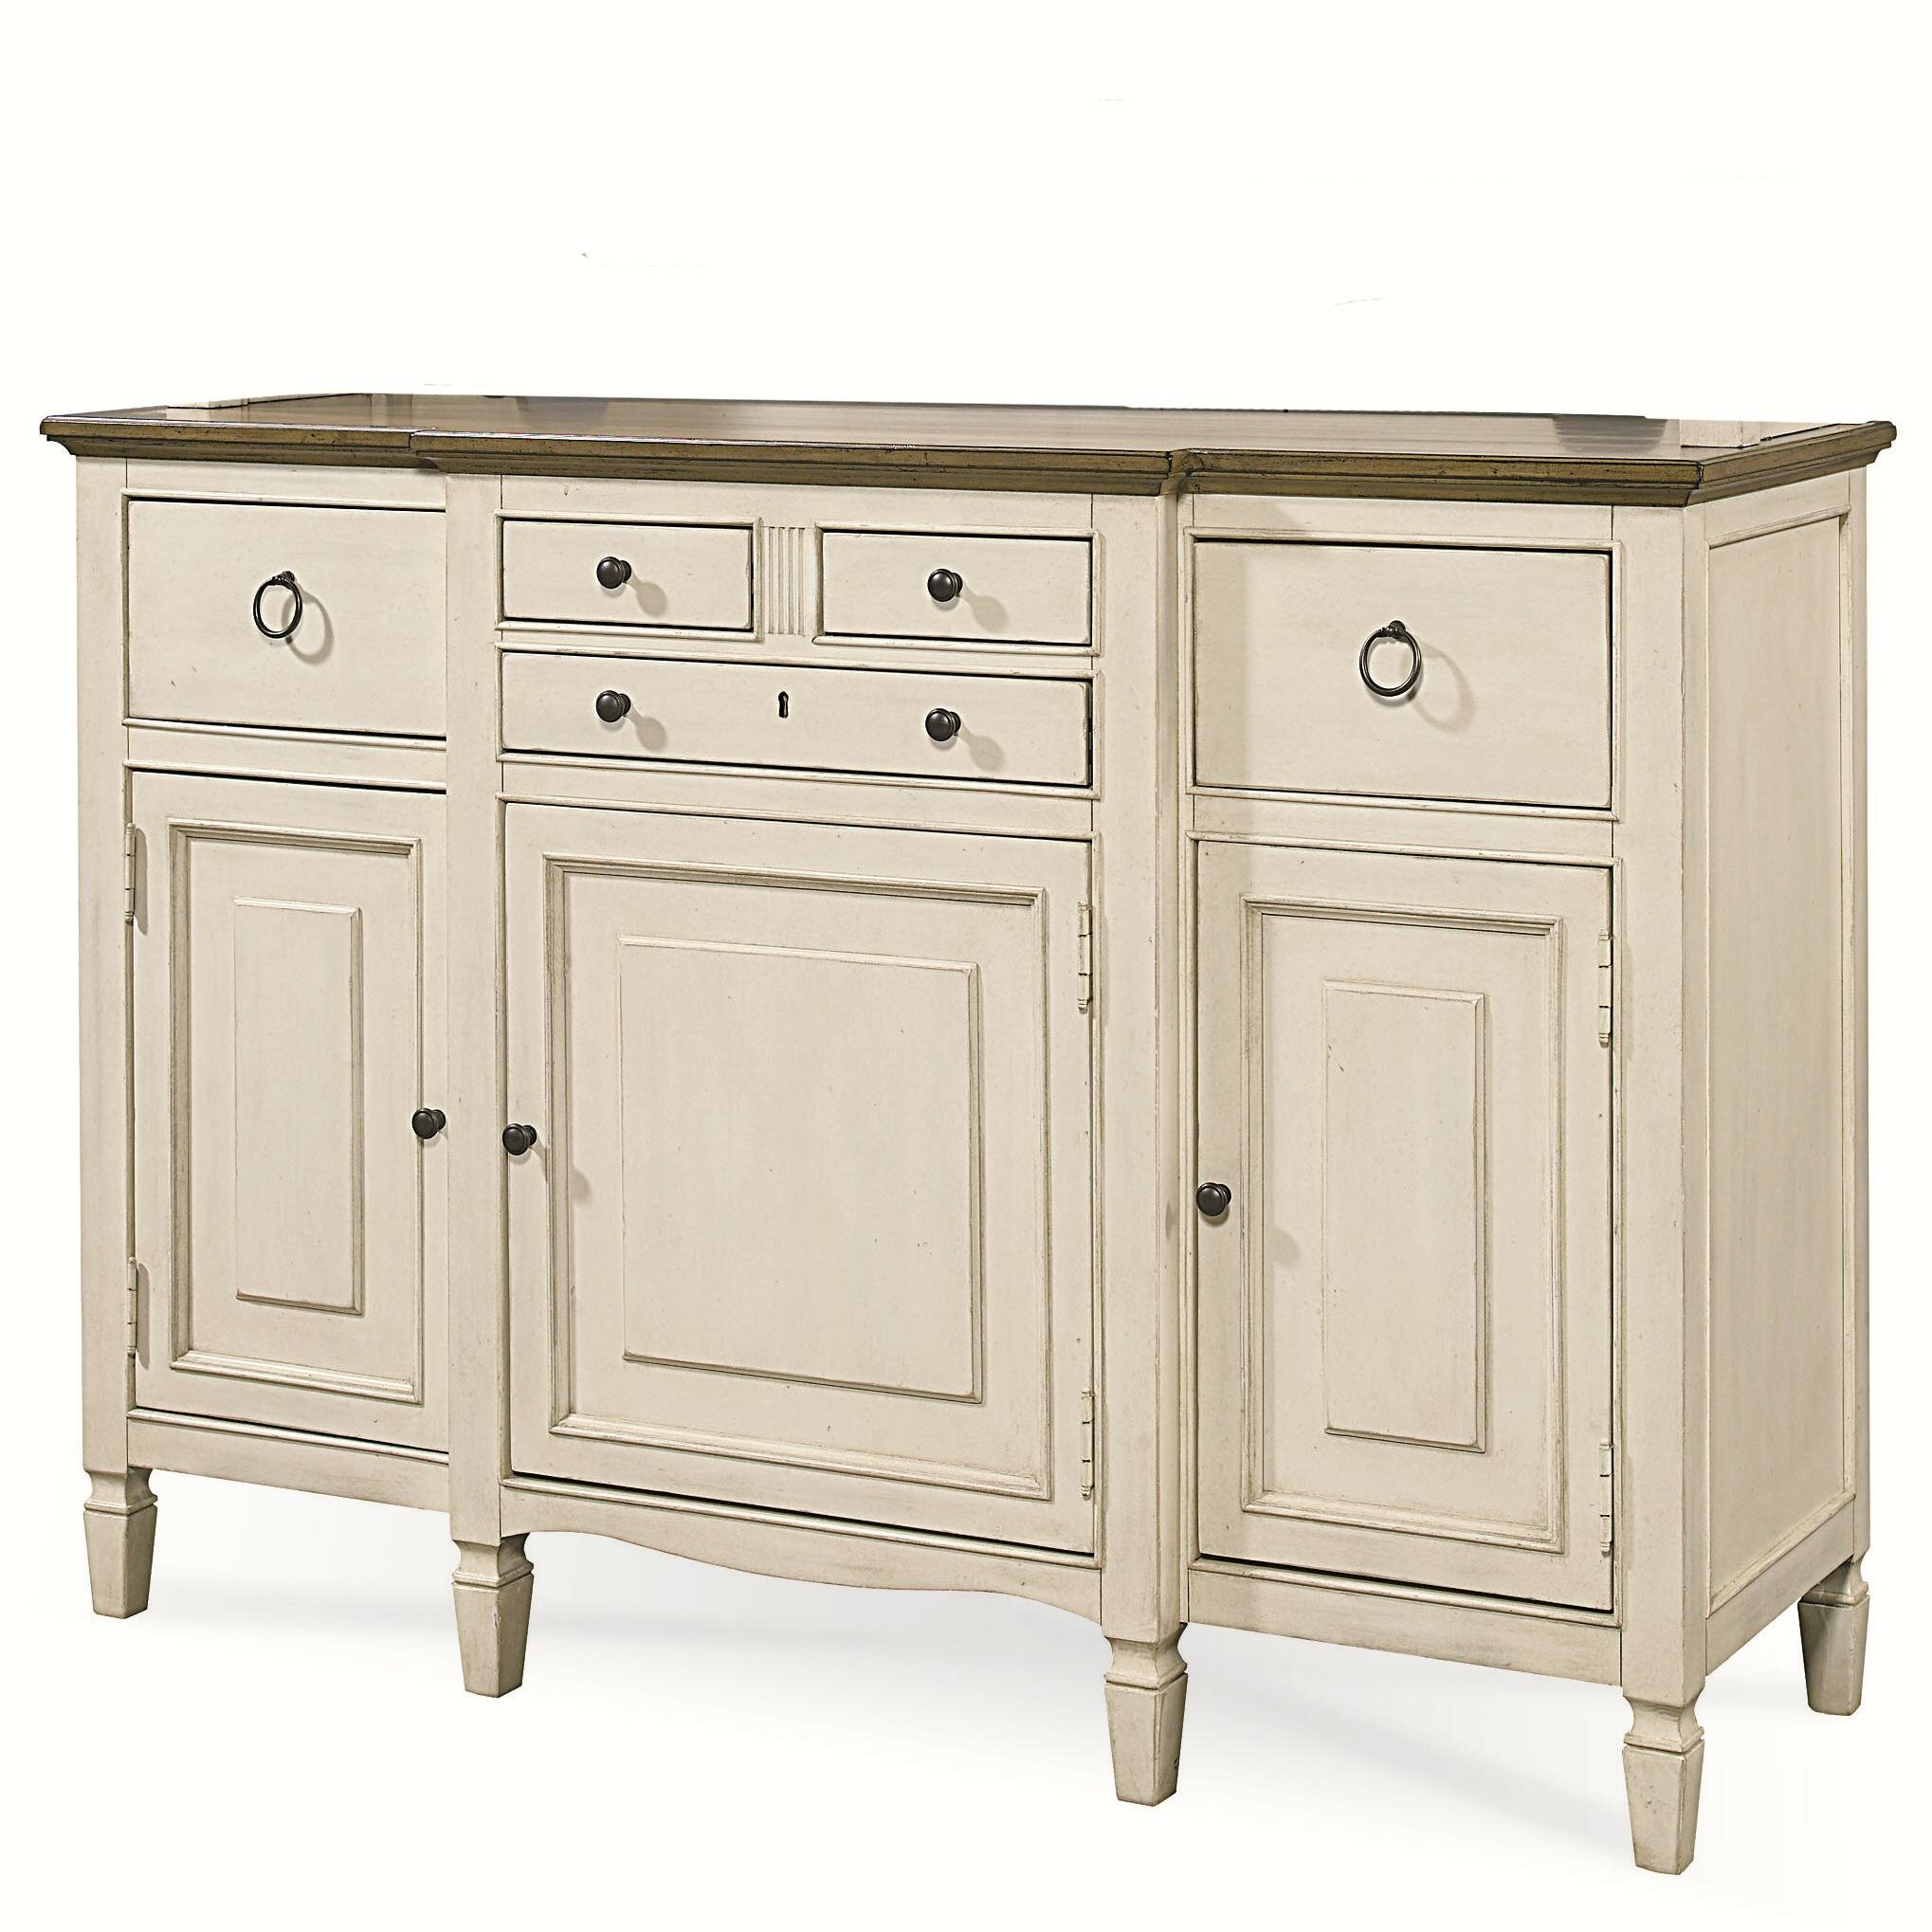 Silverware Storage Equipped Sideboards & Buffets | Joss & Main Within Best And Newest Payton Serving Sideboards (#15 of 20)